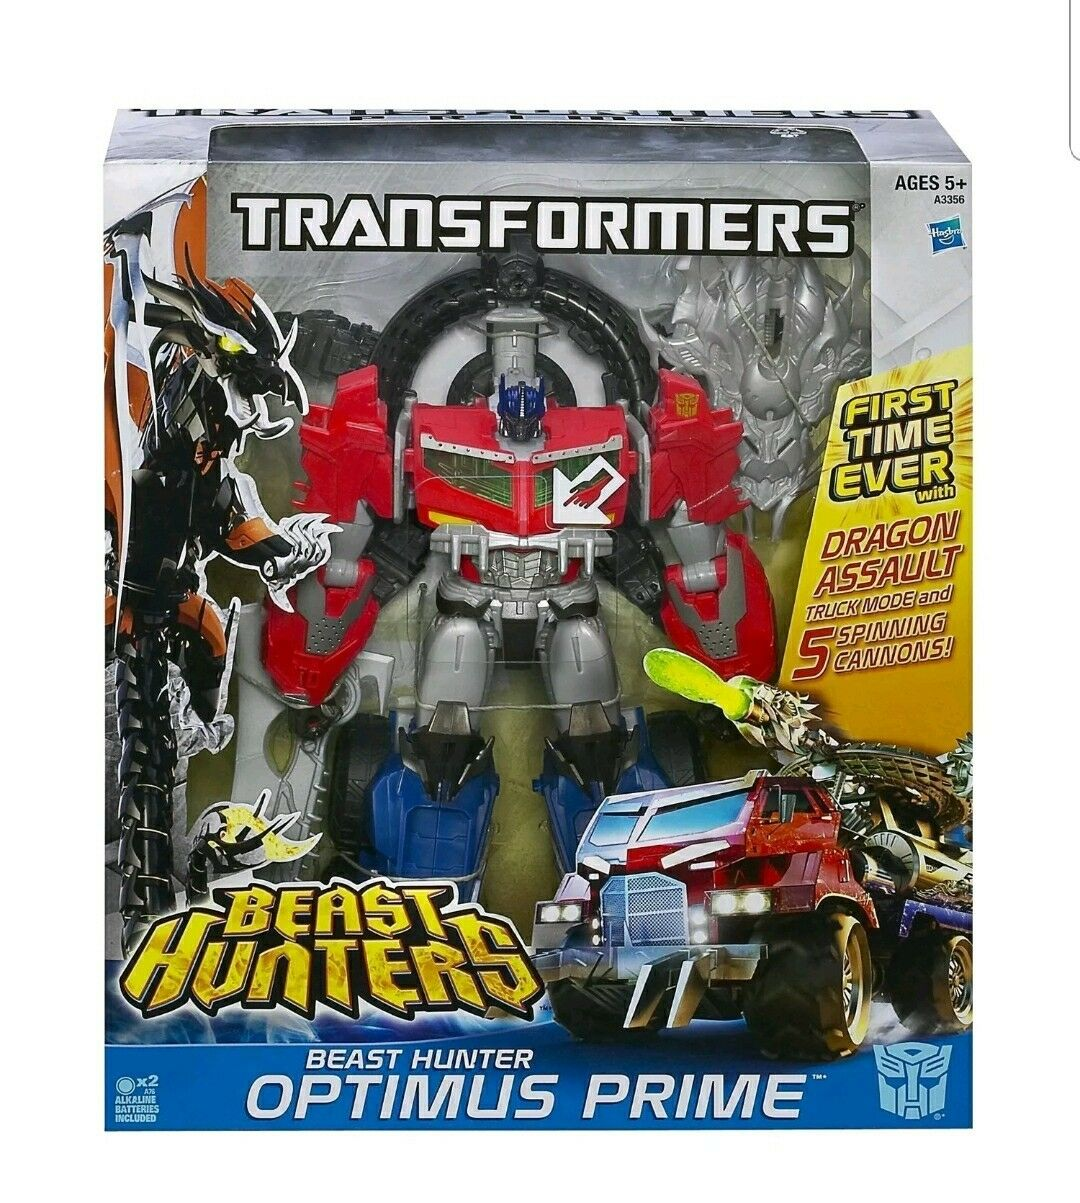 Transformers Beast Hunters DRAGON ASSAULT OPTIMUS PRIME NEW SEALED RARE